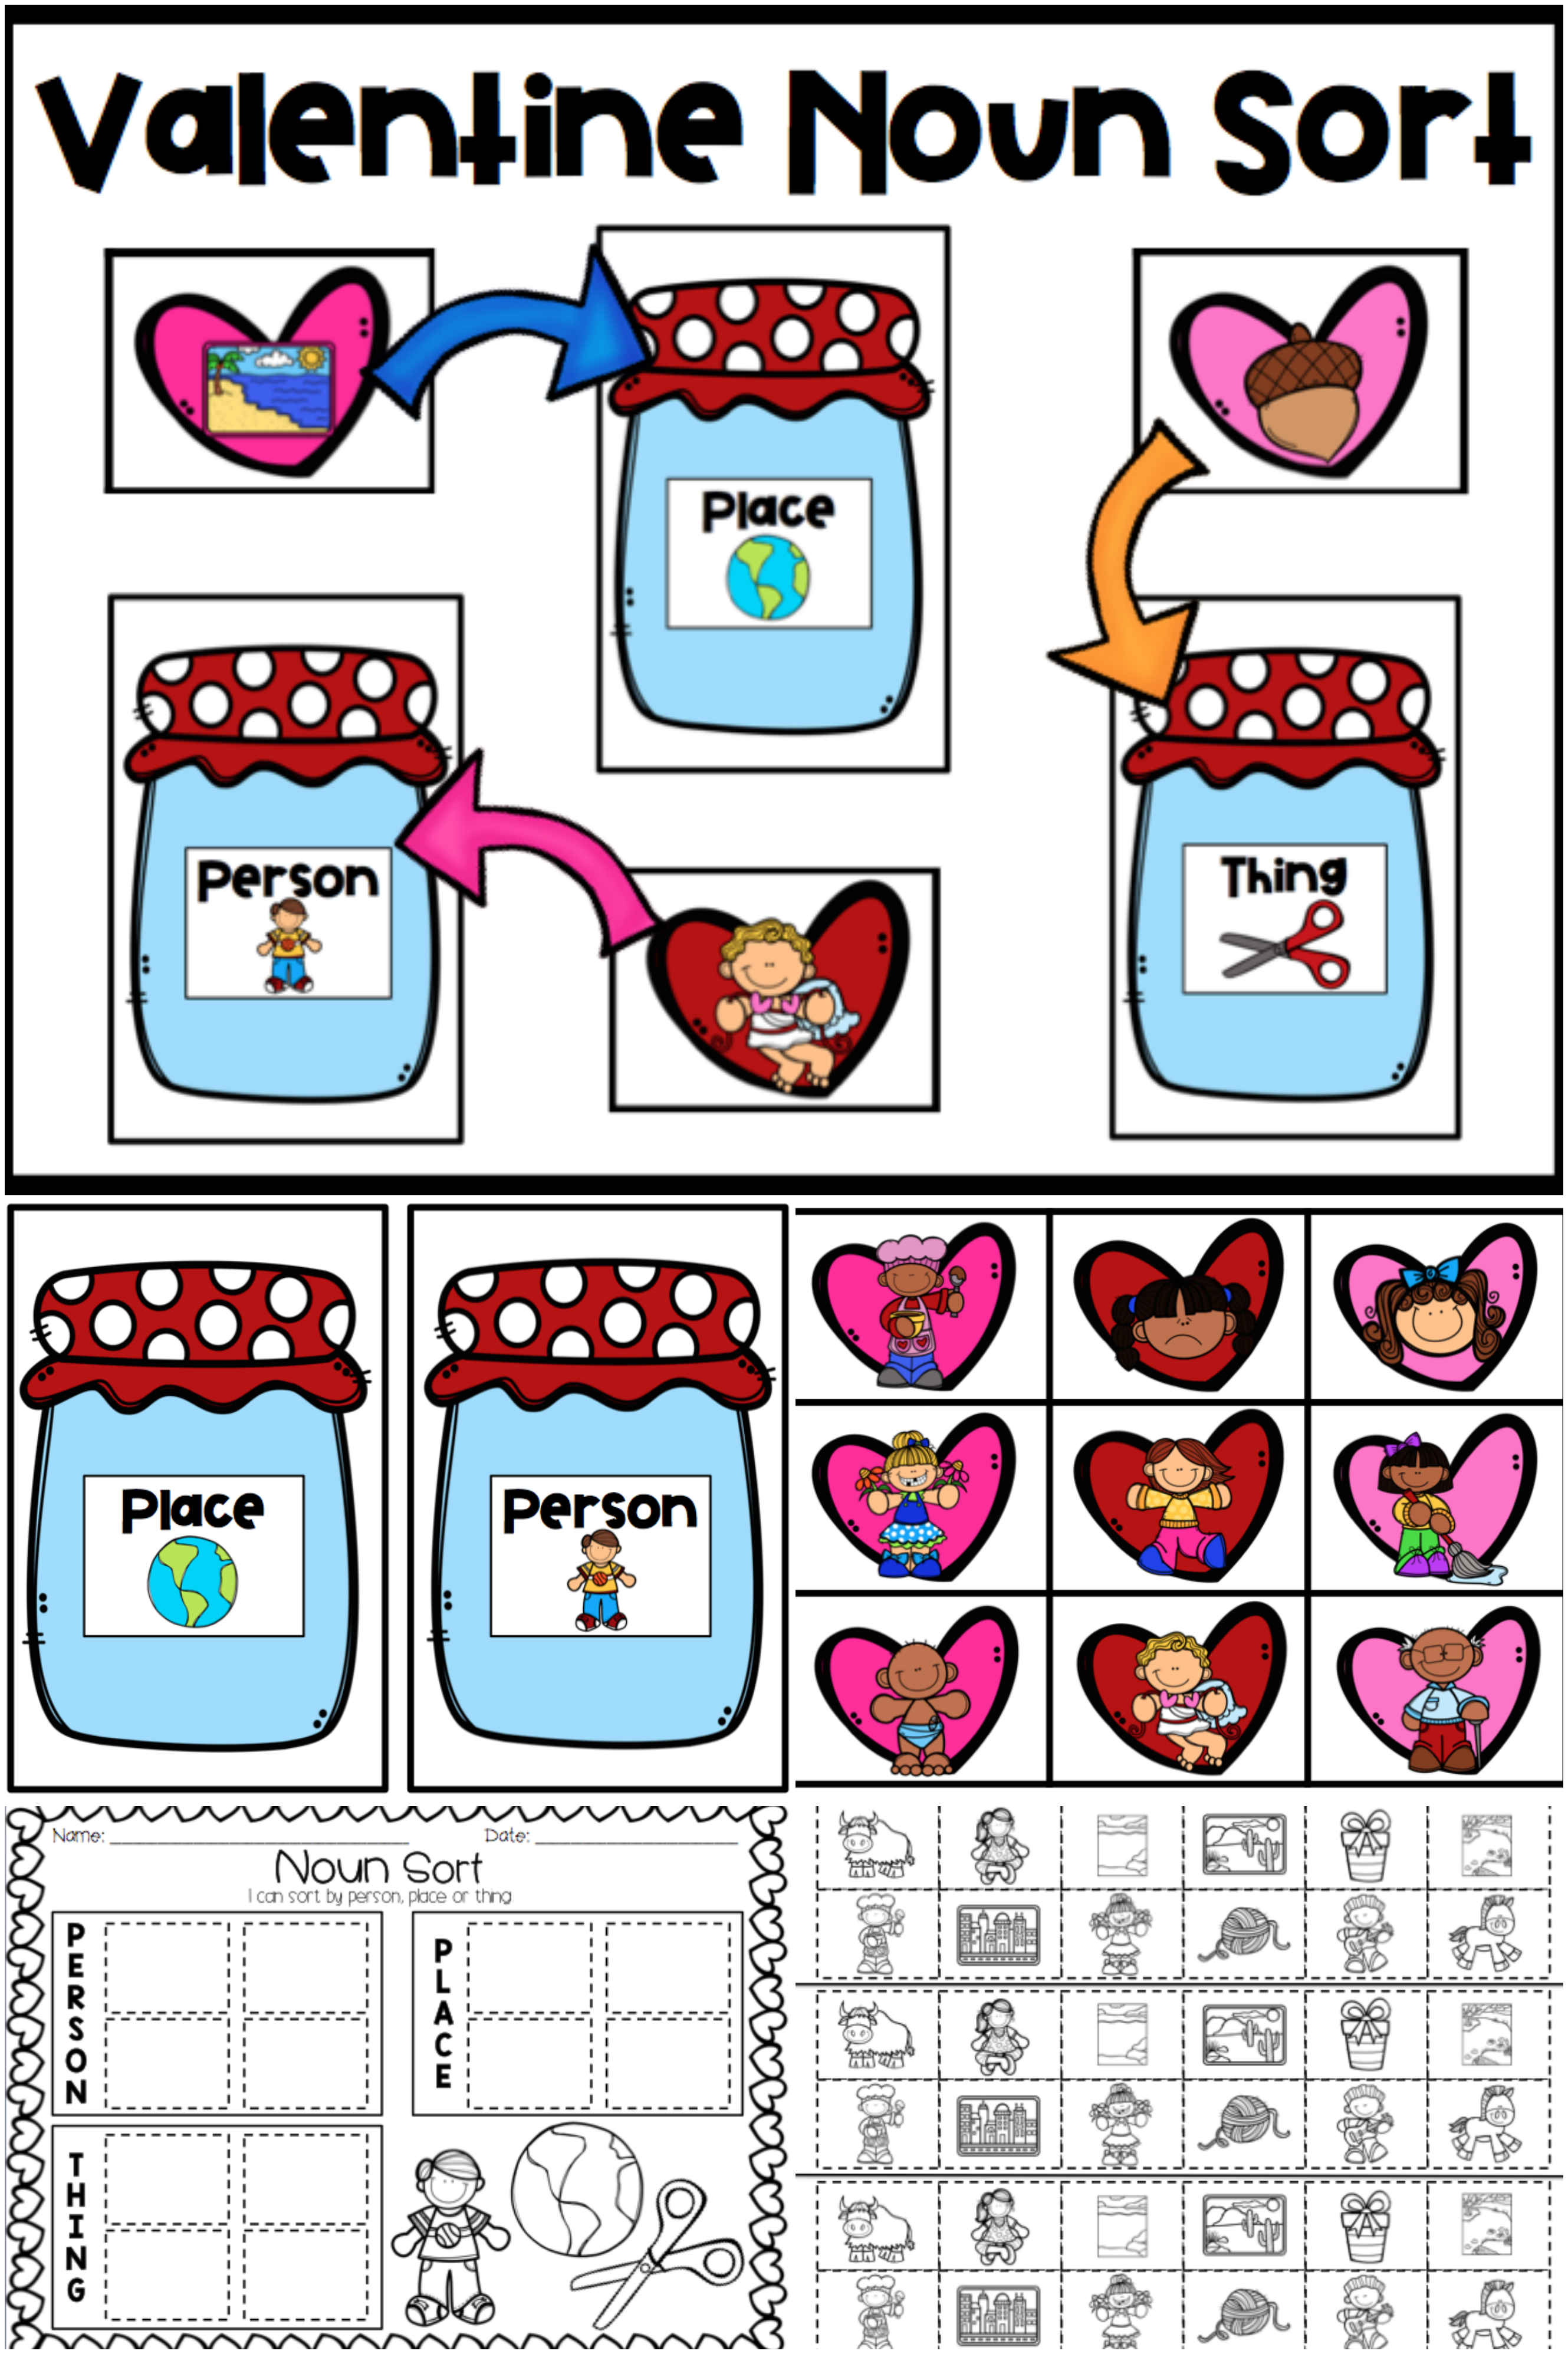 Valentine Noun Sort With Images